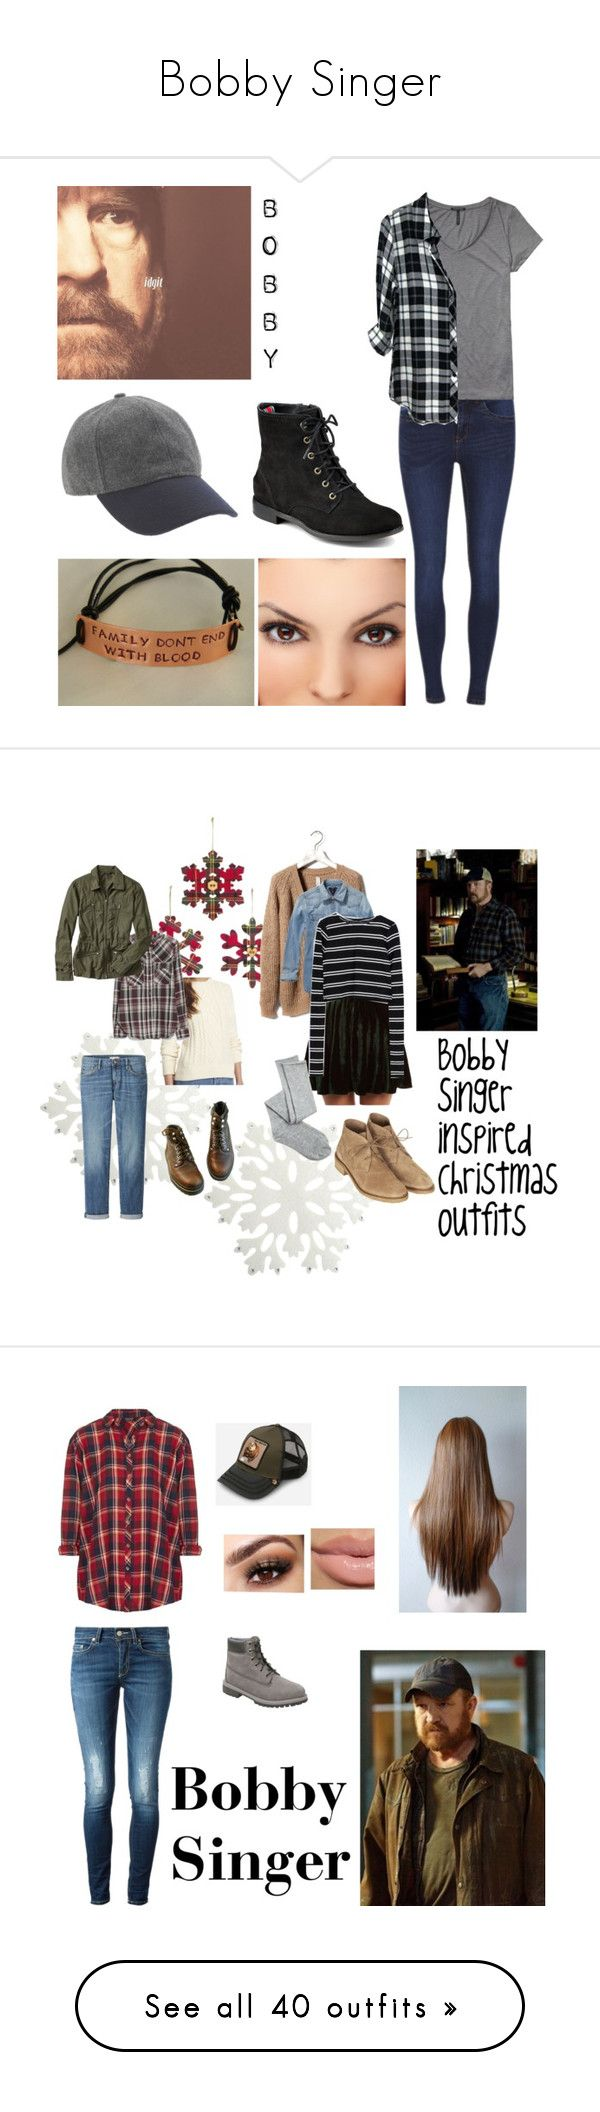 """Bobby Singer"" by samtiritilli ❤ liked on Polyvore featuring ONLY, Scotch & Soda, Rails, J.Crew, Sperry, Pier 1 Imports, Chaps, MANGO, Gap and Pull&Bear"